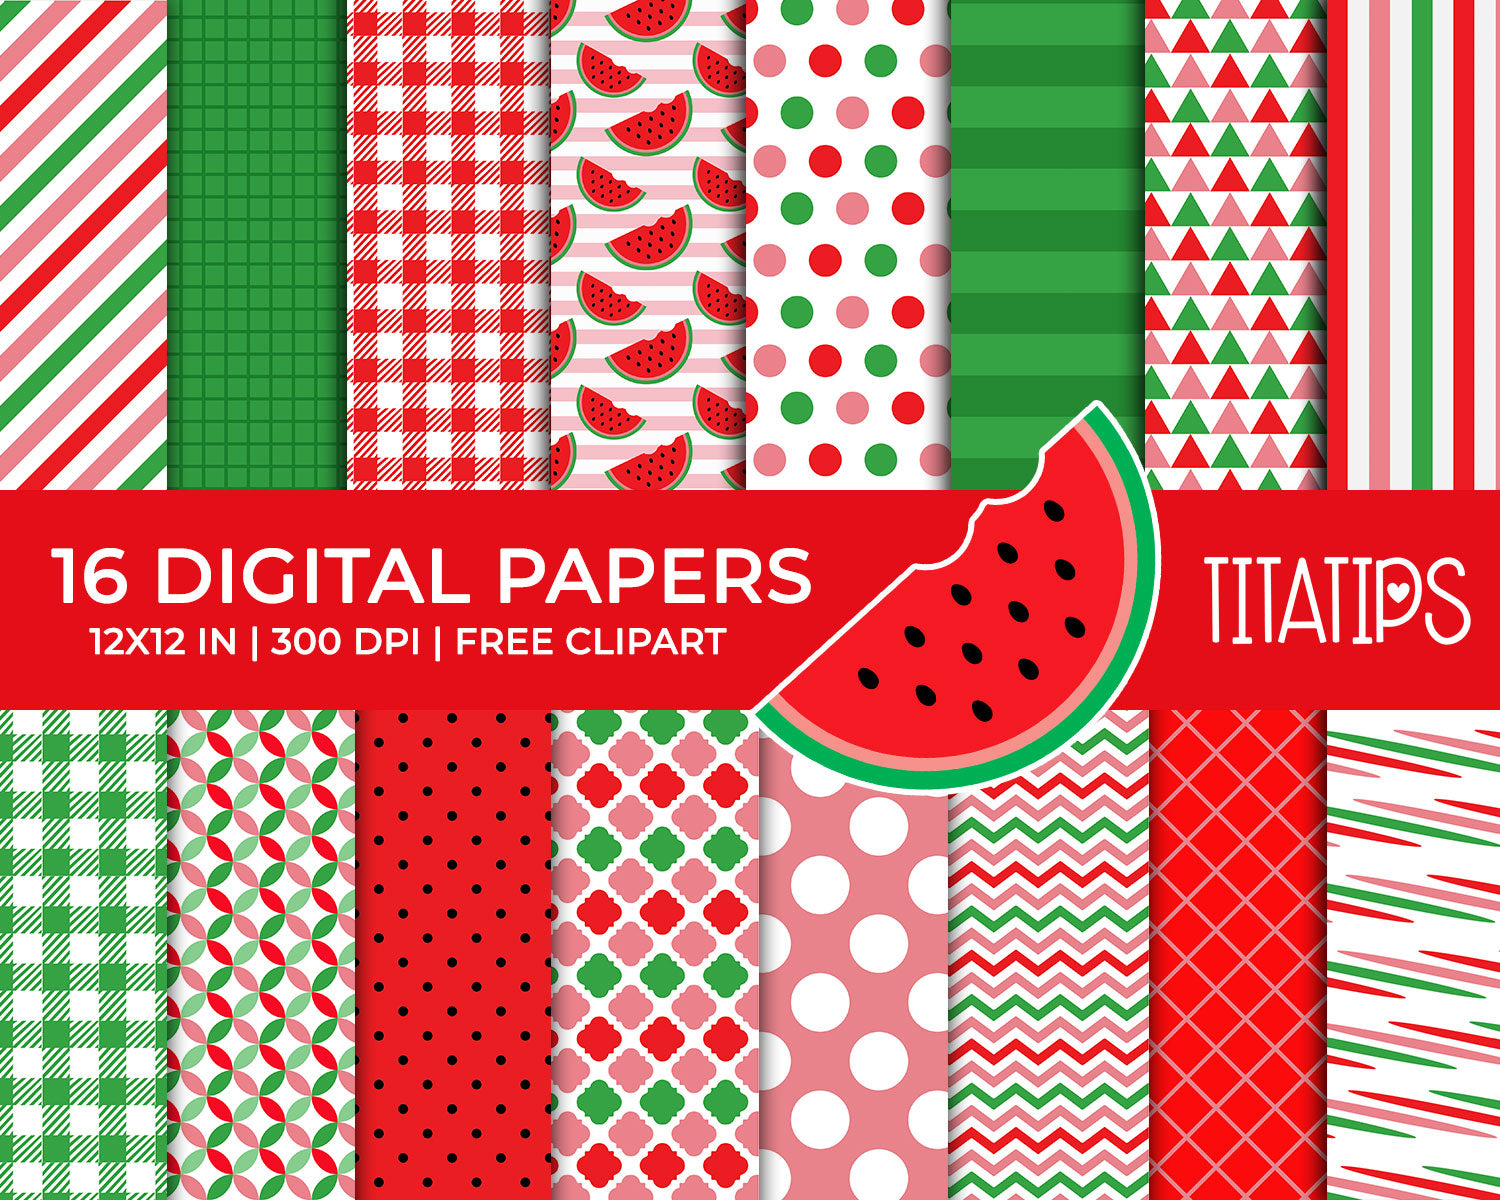 Watermelon Digital Paper Set, Commercial Use [INSTANT DOWNLOAD] - TitaTipsPrintables